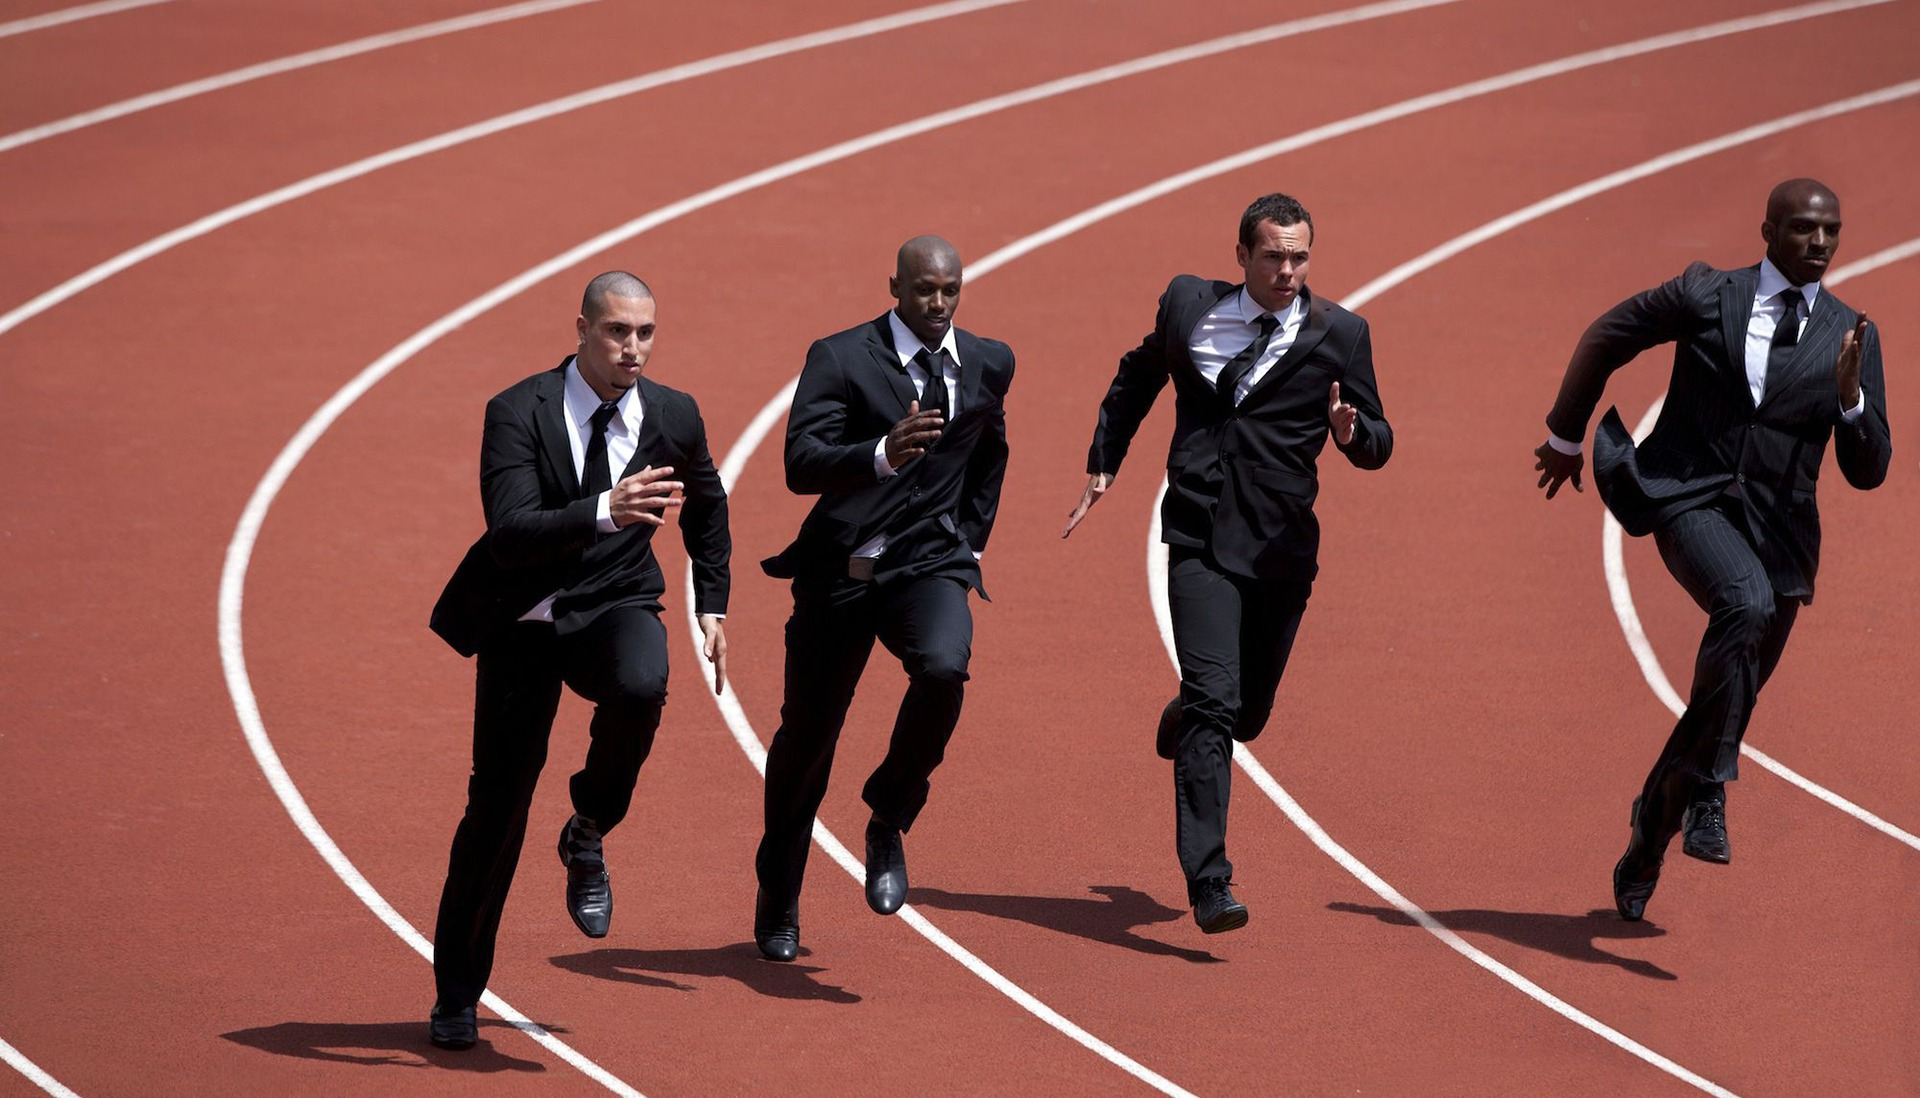 businessmen running on track